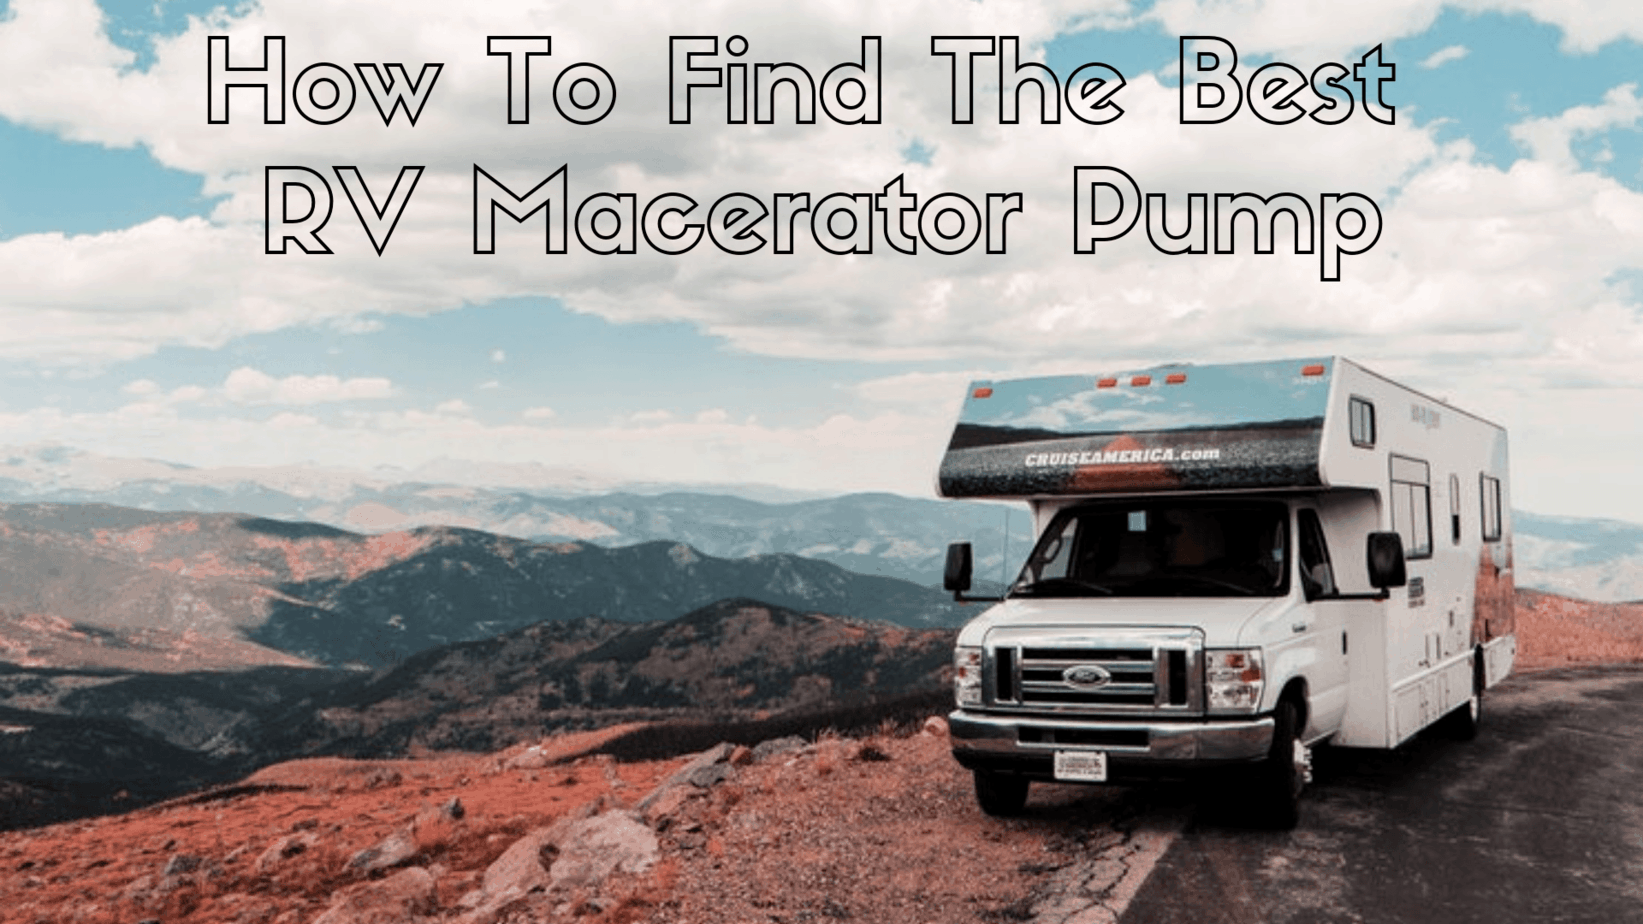 The Best RV Macerator Pump in 2021: How to Find the Right One